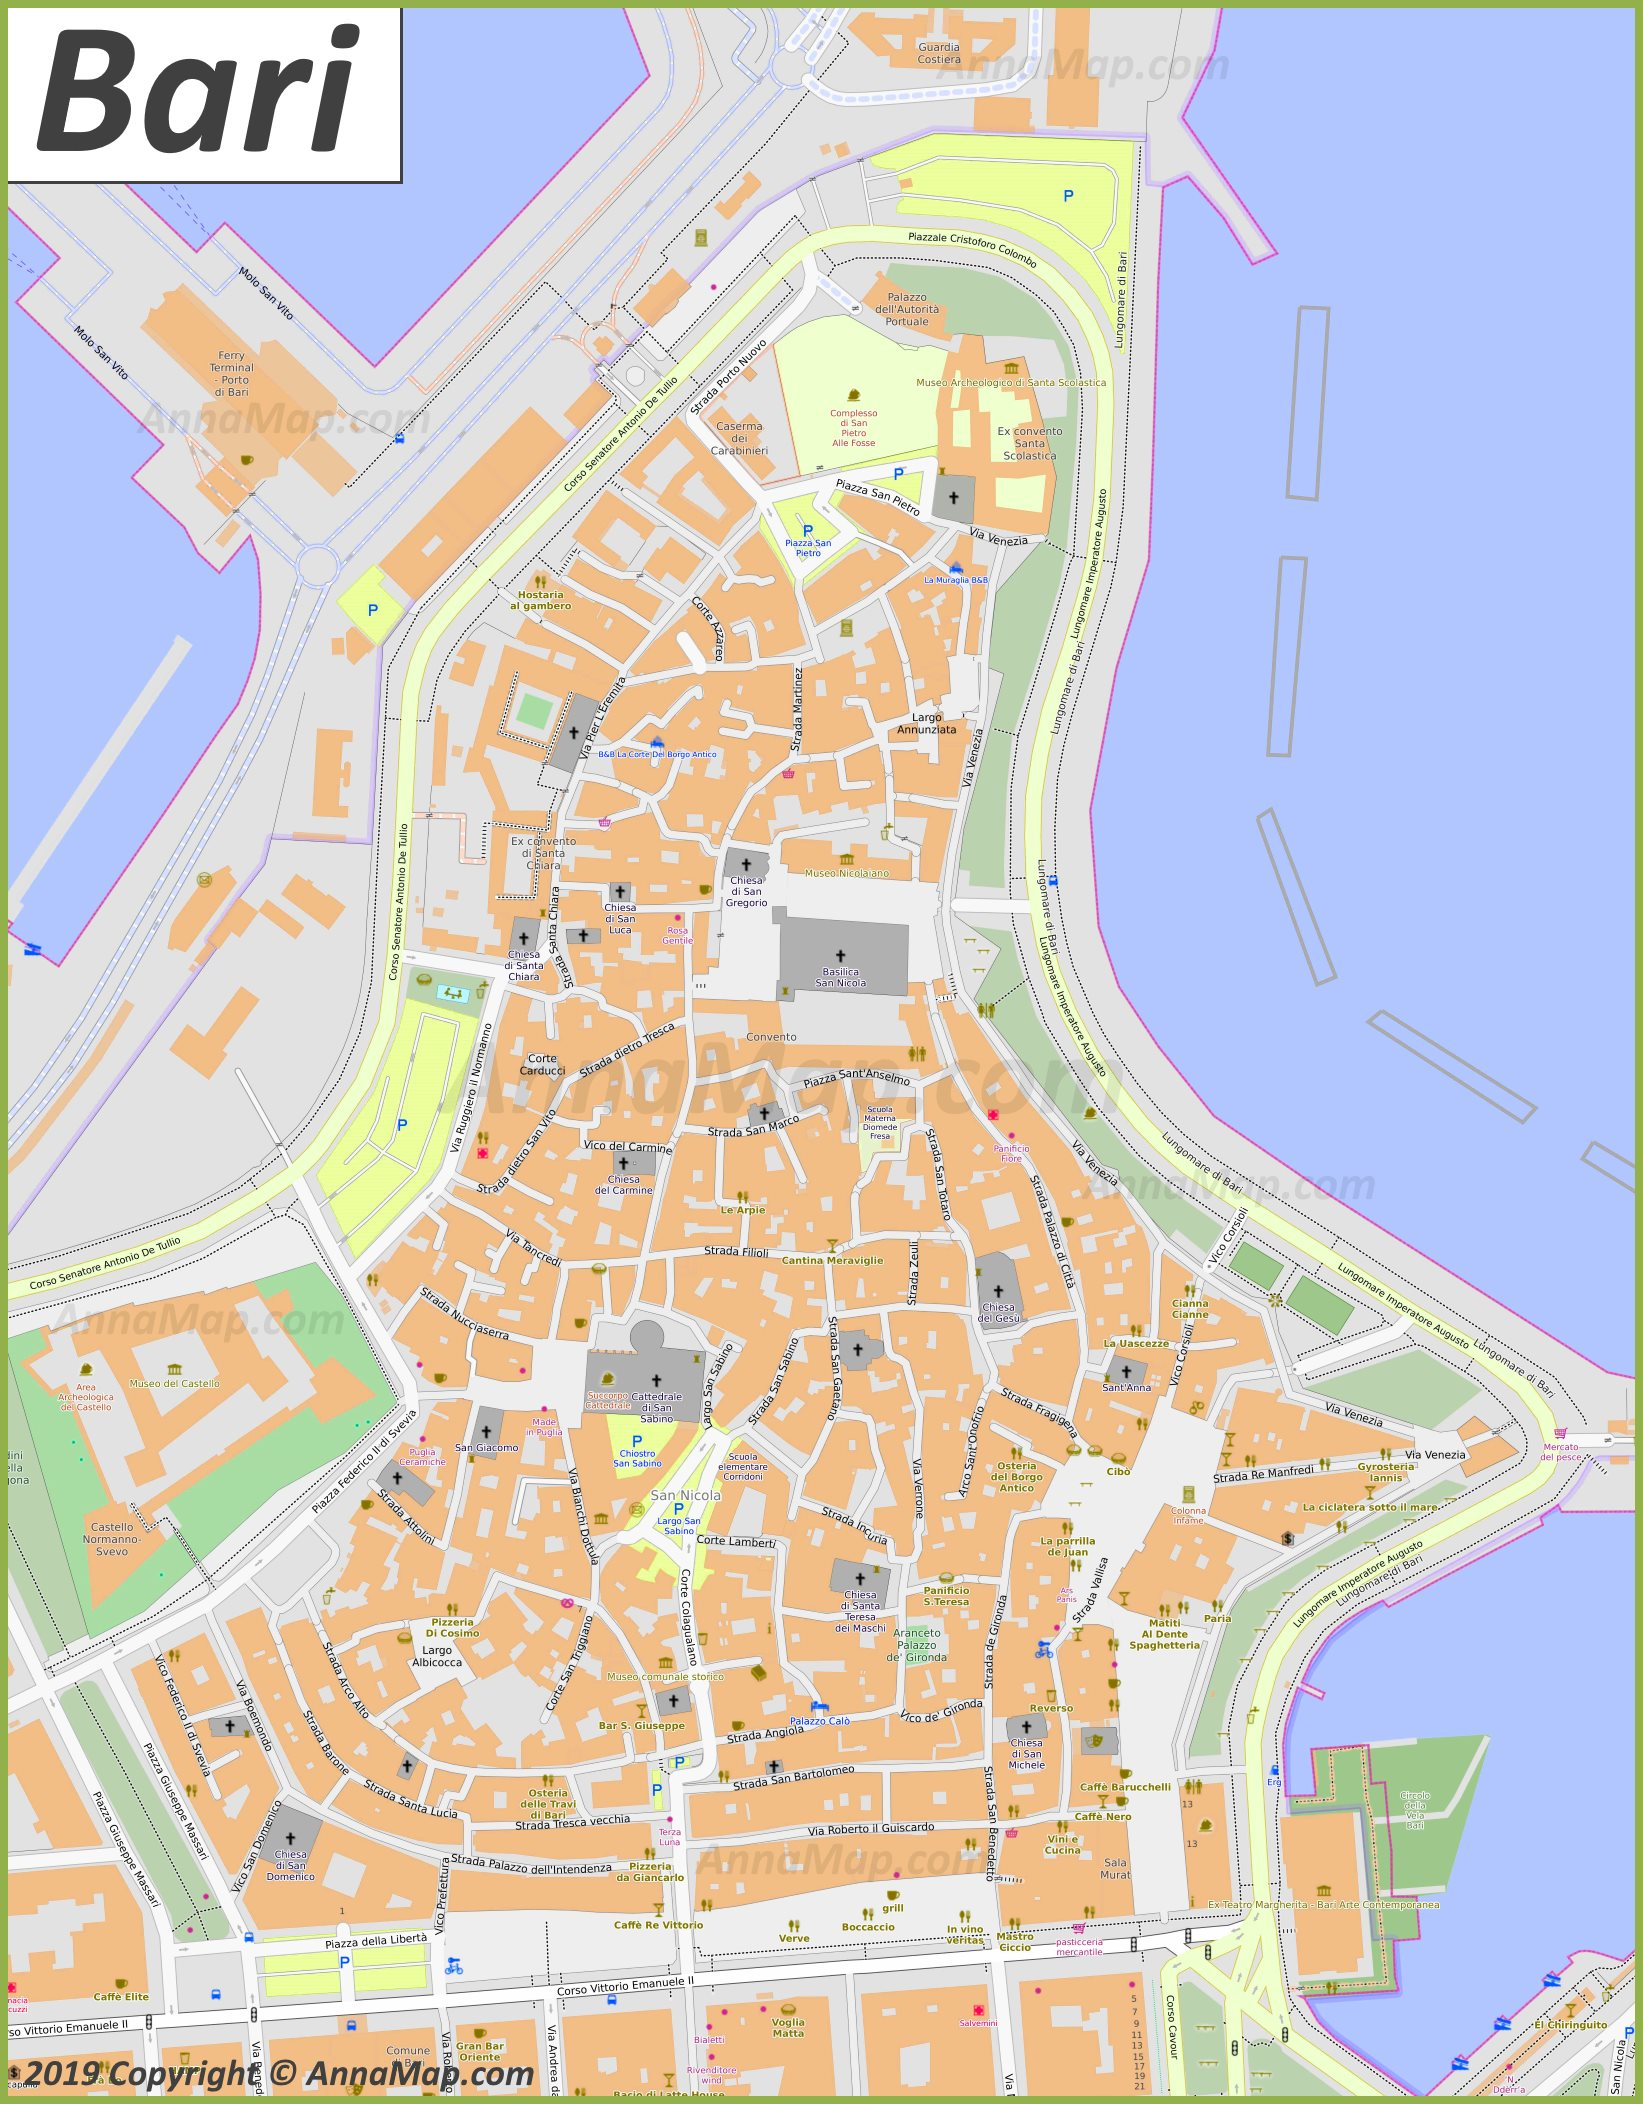 Detailed Map Of Italy With Cities And Towns.Detailed Tourist Maps Of Bari Italy Free Printable Maps Of Bari